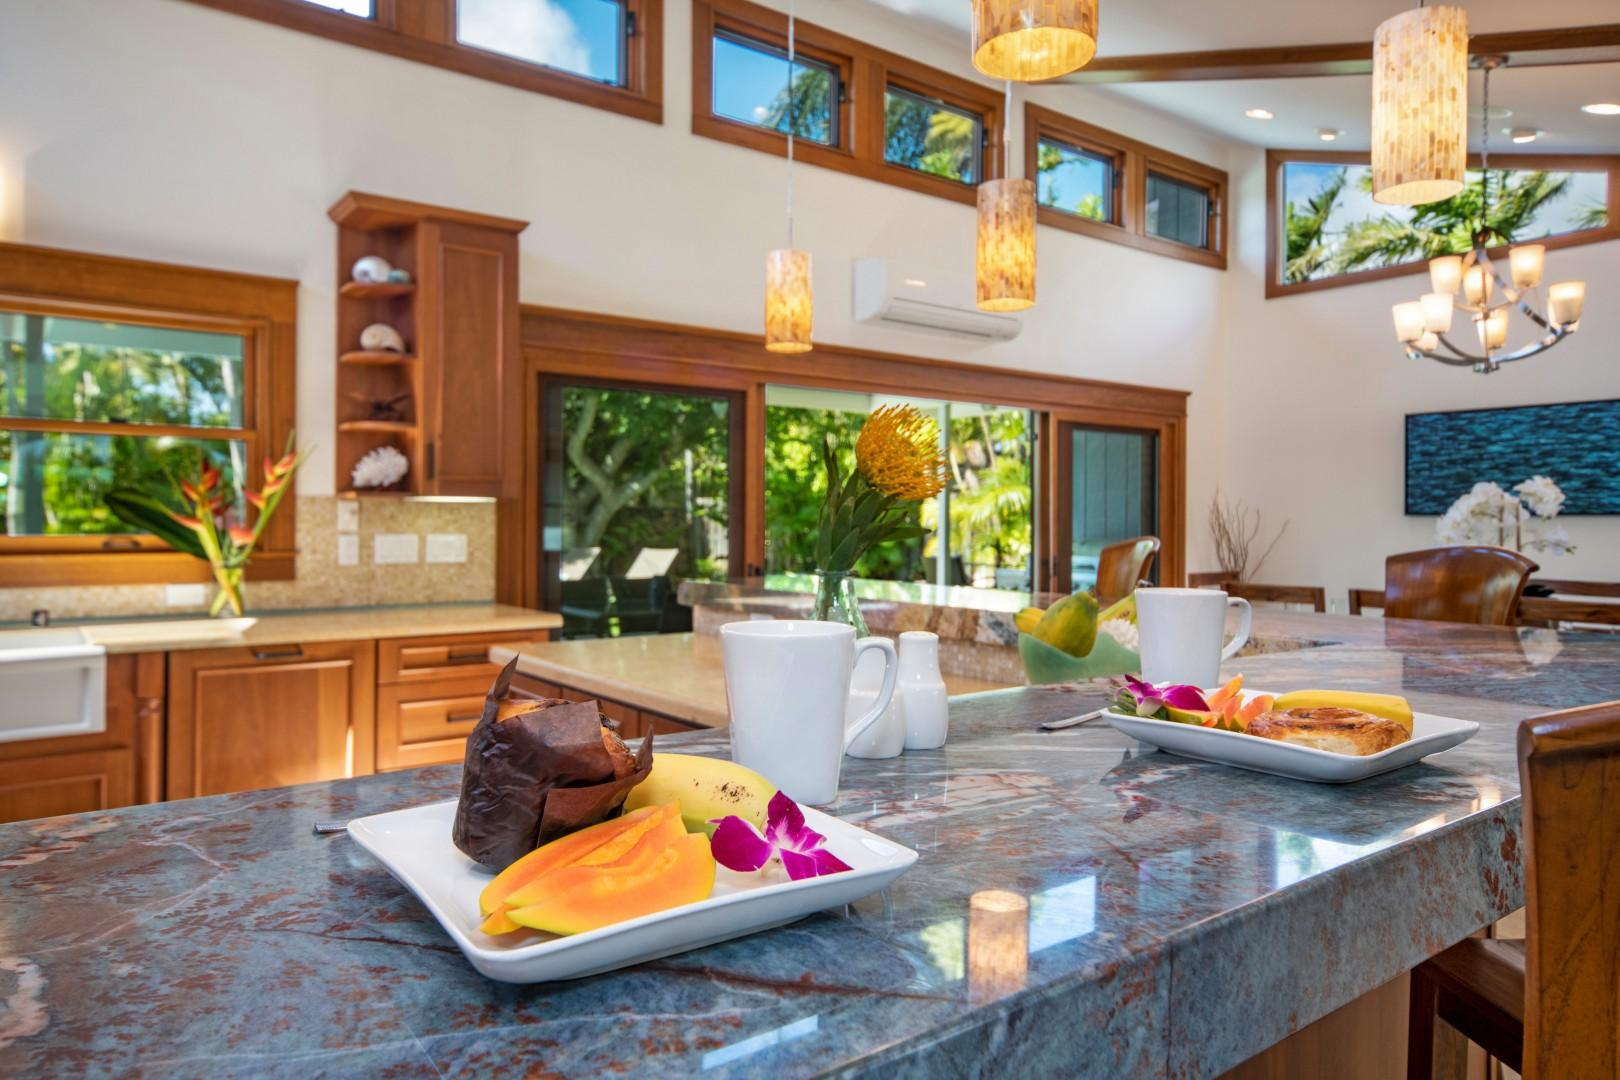 Enjoy island fresh fruits and pastries at the breakfast nook!